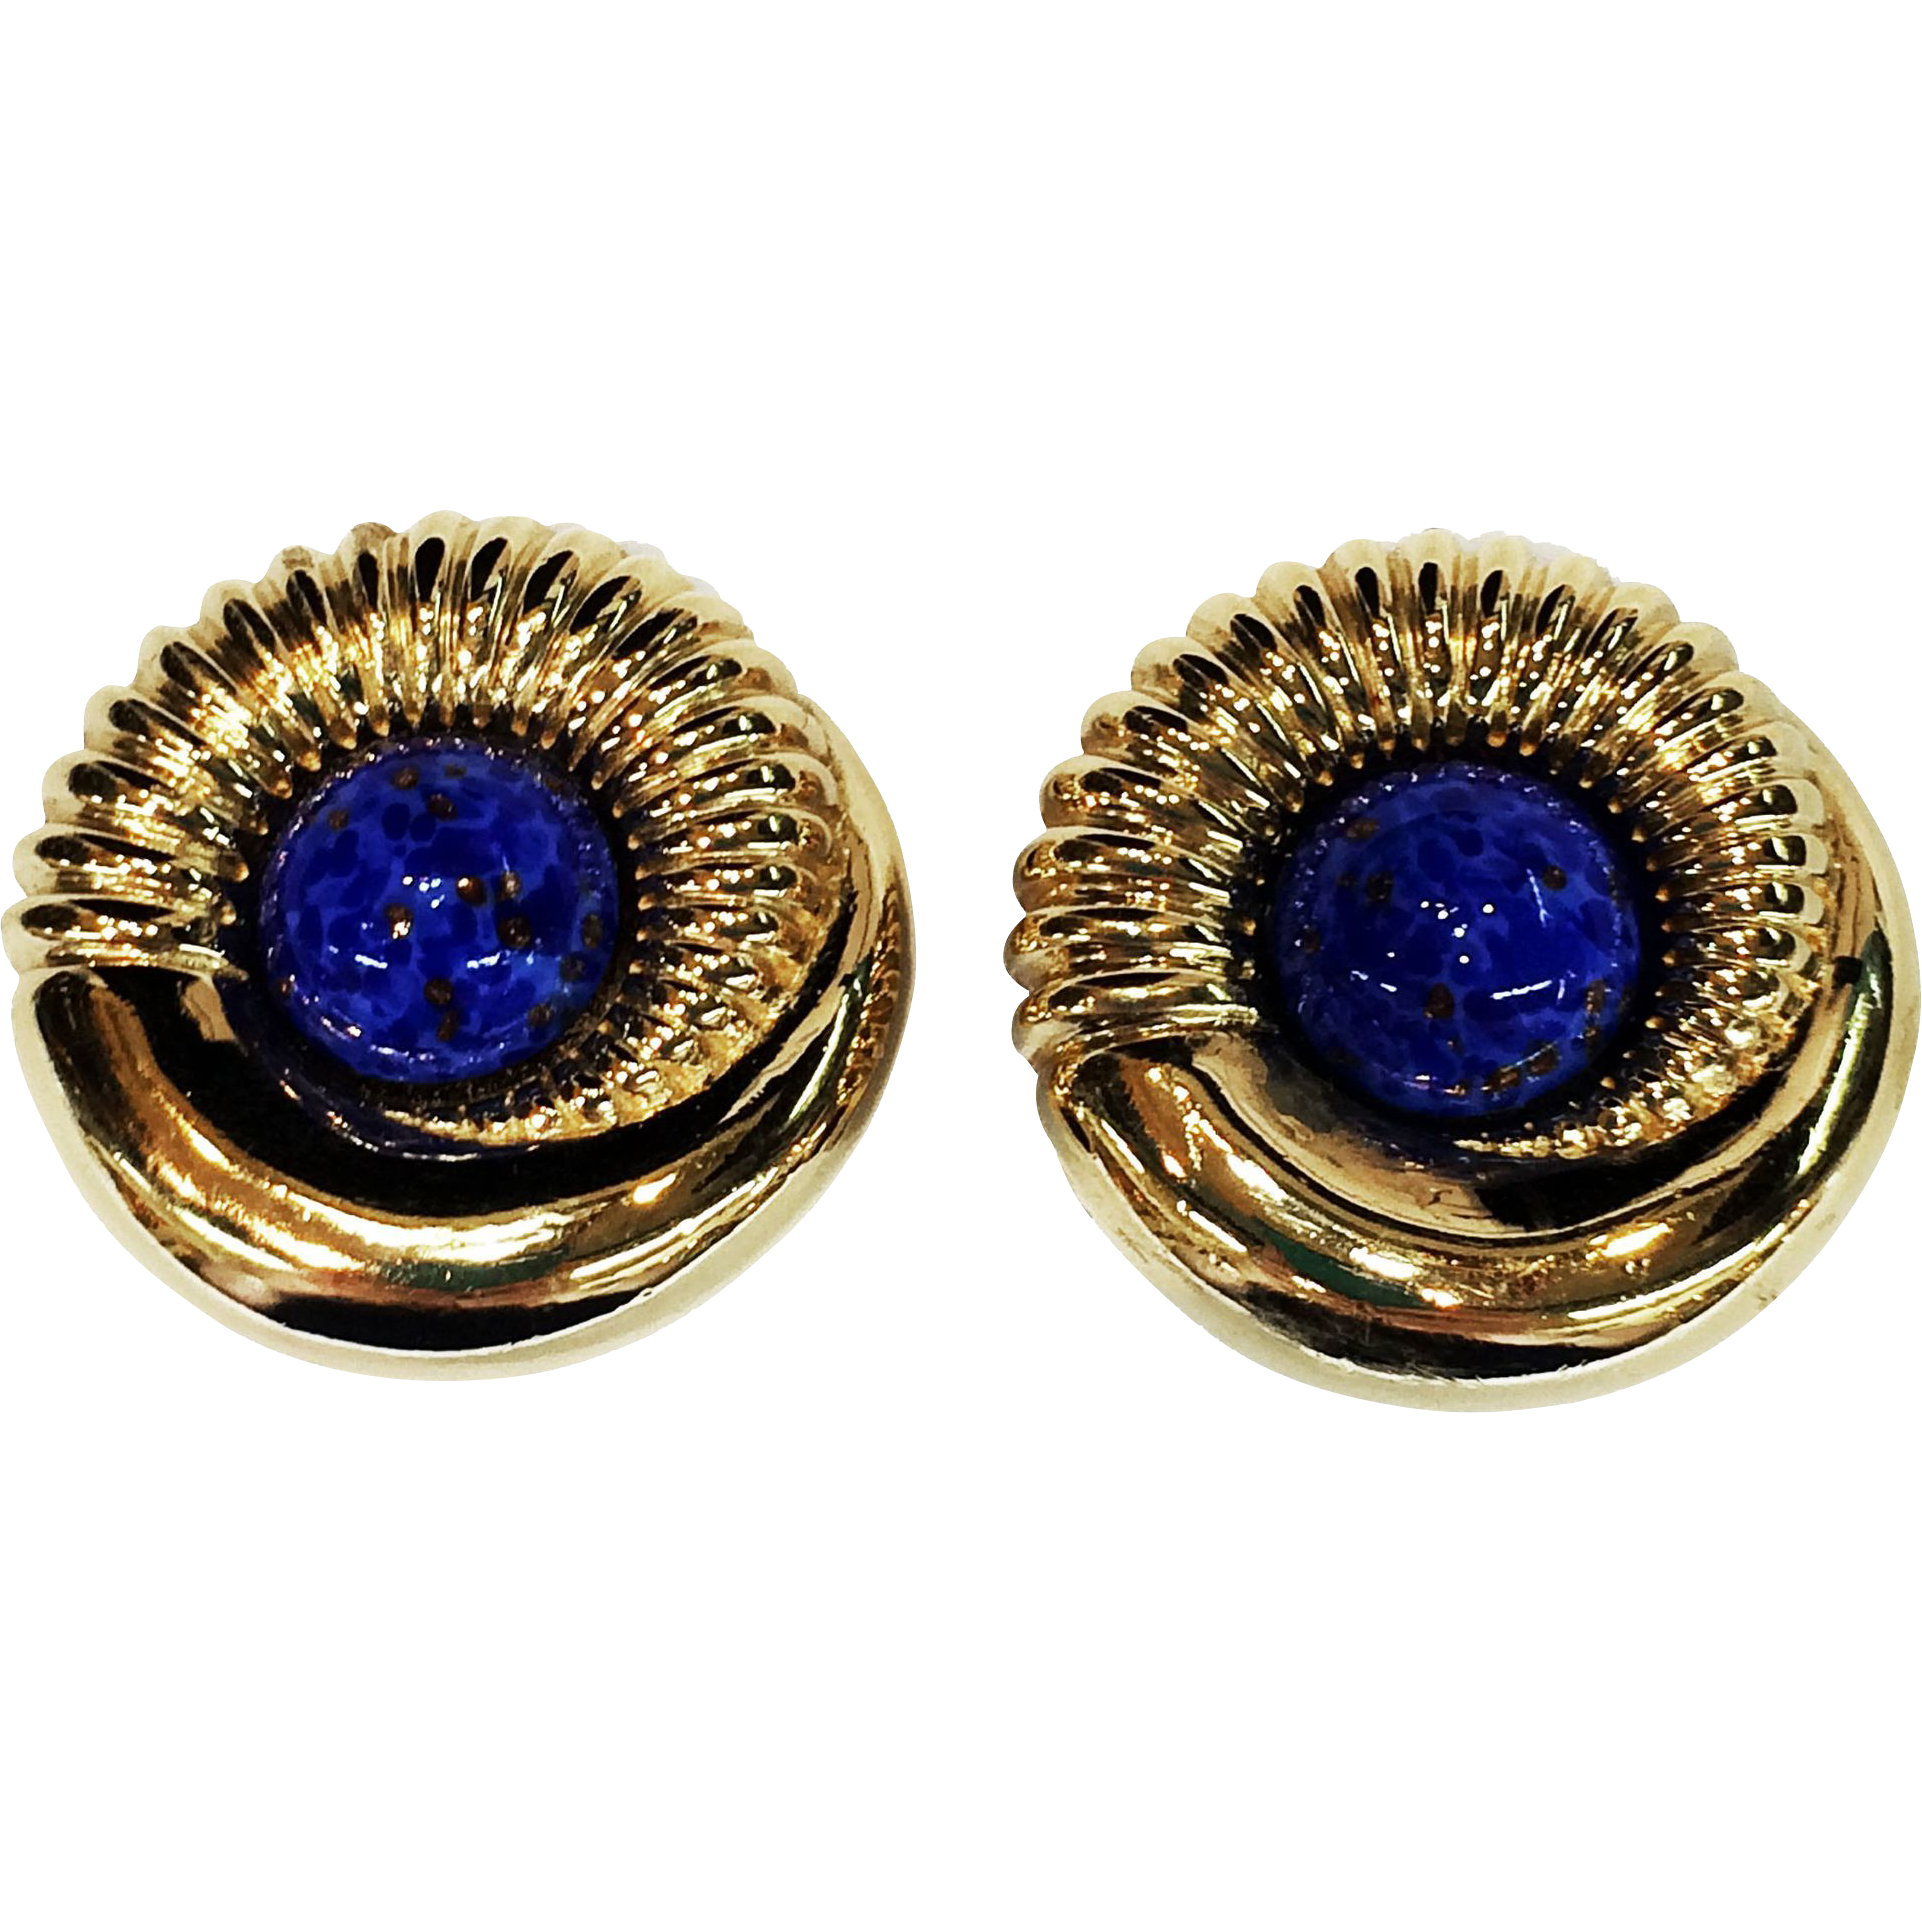 Signed CINER Gold Plated Metal Earrings with Blue and Copper Flecked Cabochon